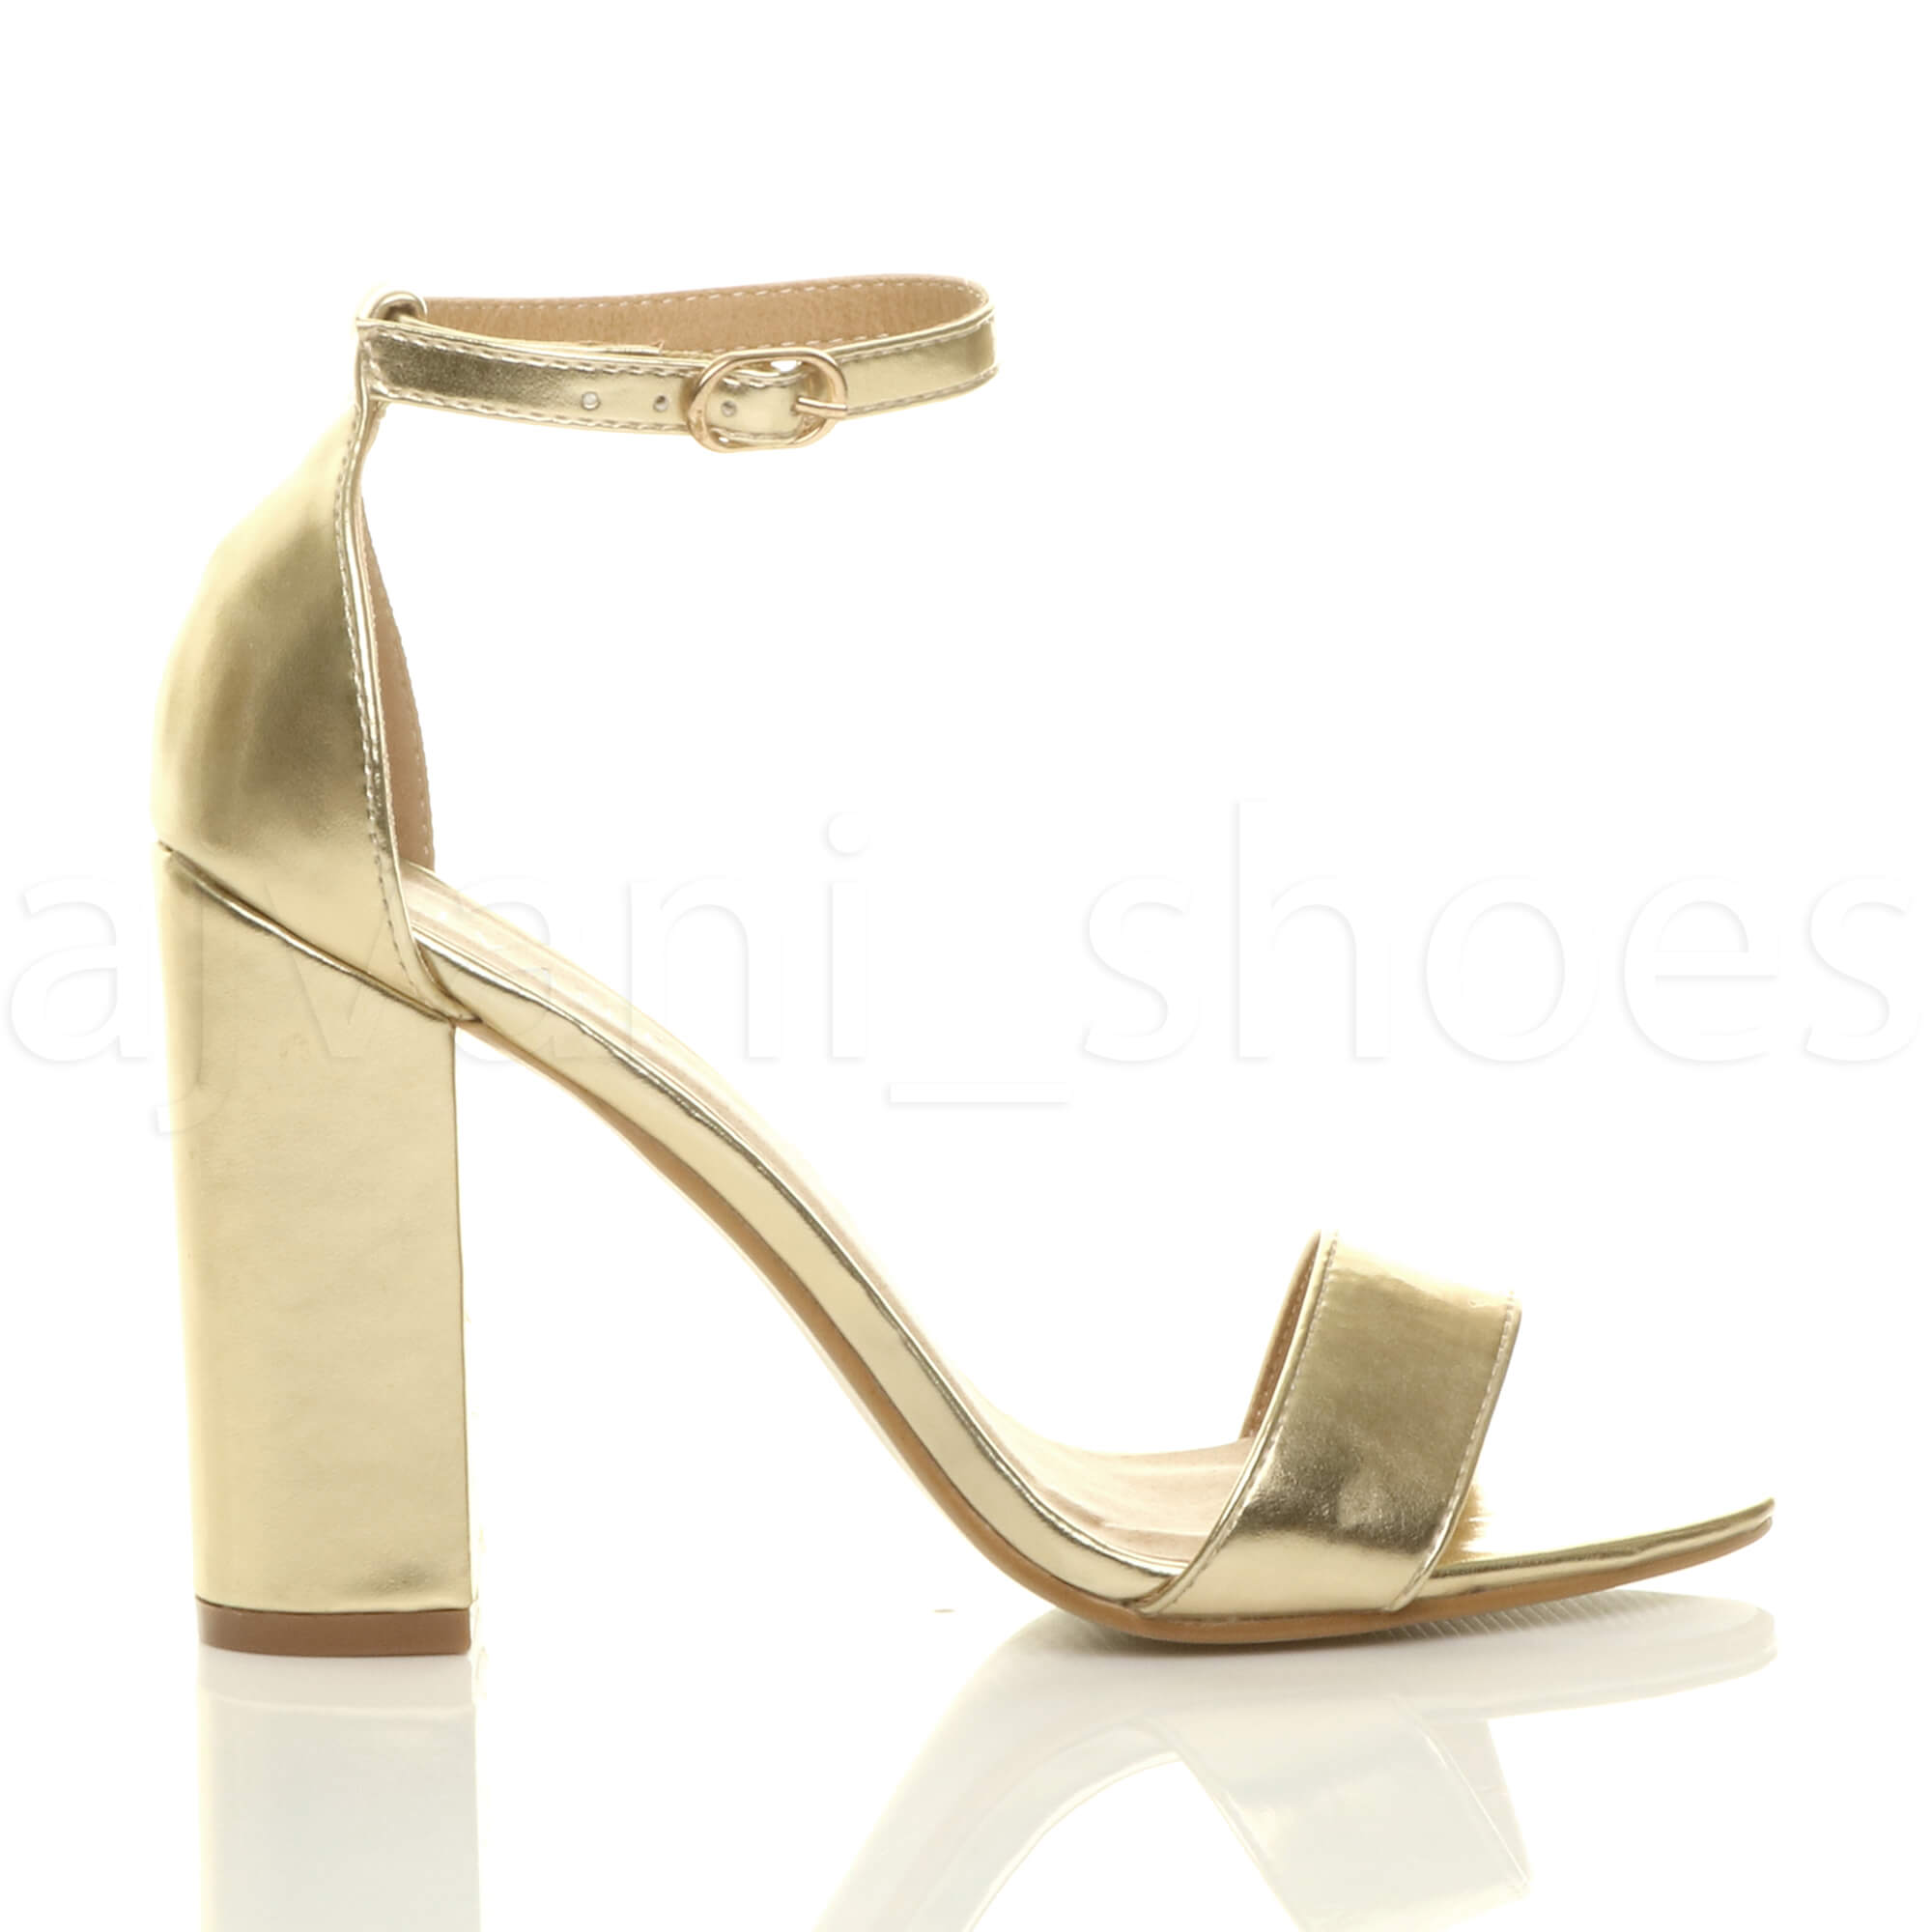 WOMENS-LADIES-BLOCK-HIGH-HEEL-ANKLE-STRAP-PEEP-TOE-STRAPPY-SANDALS-SHOES-SIZE thumbnail 67